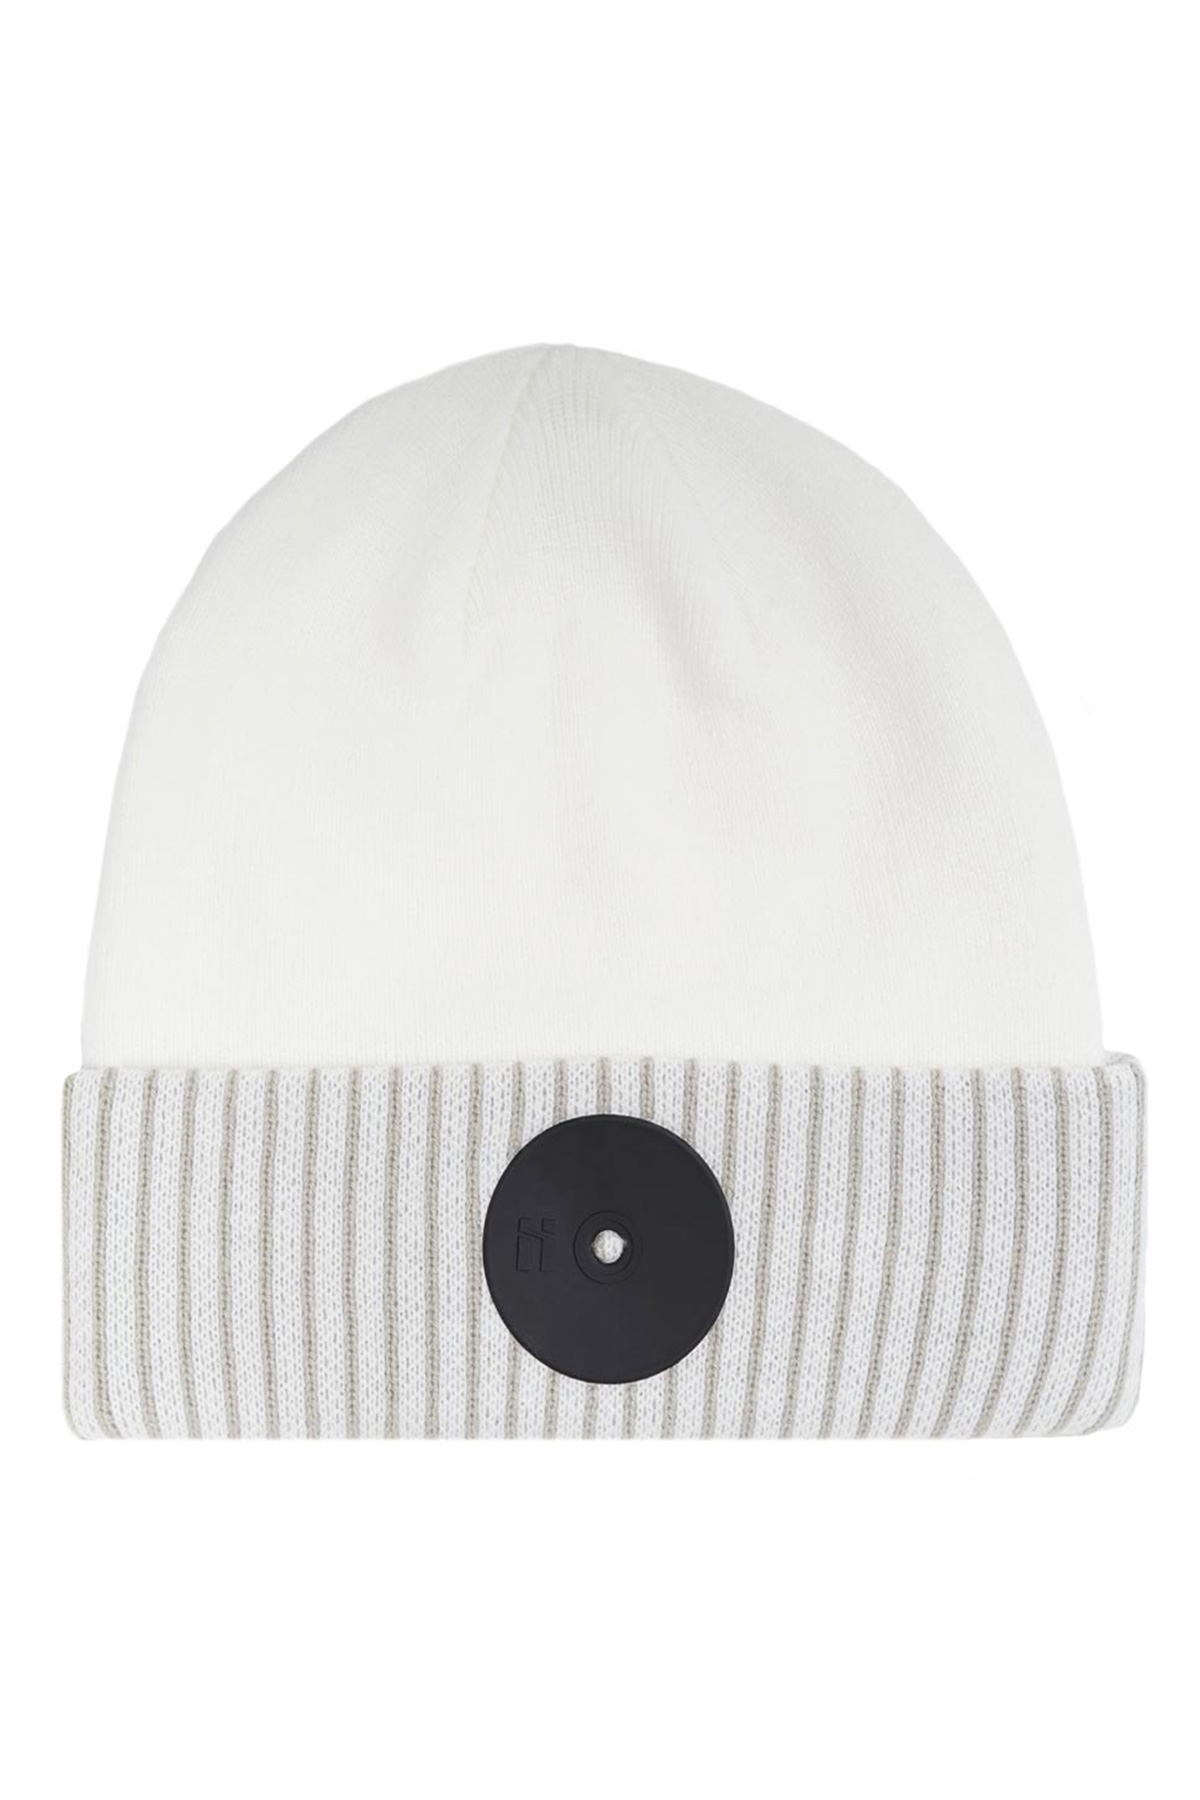 Mr. Serious NEW YORK FAT Beanie Cap